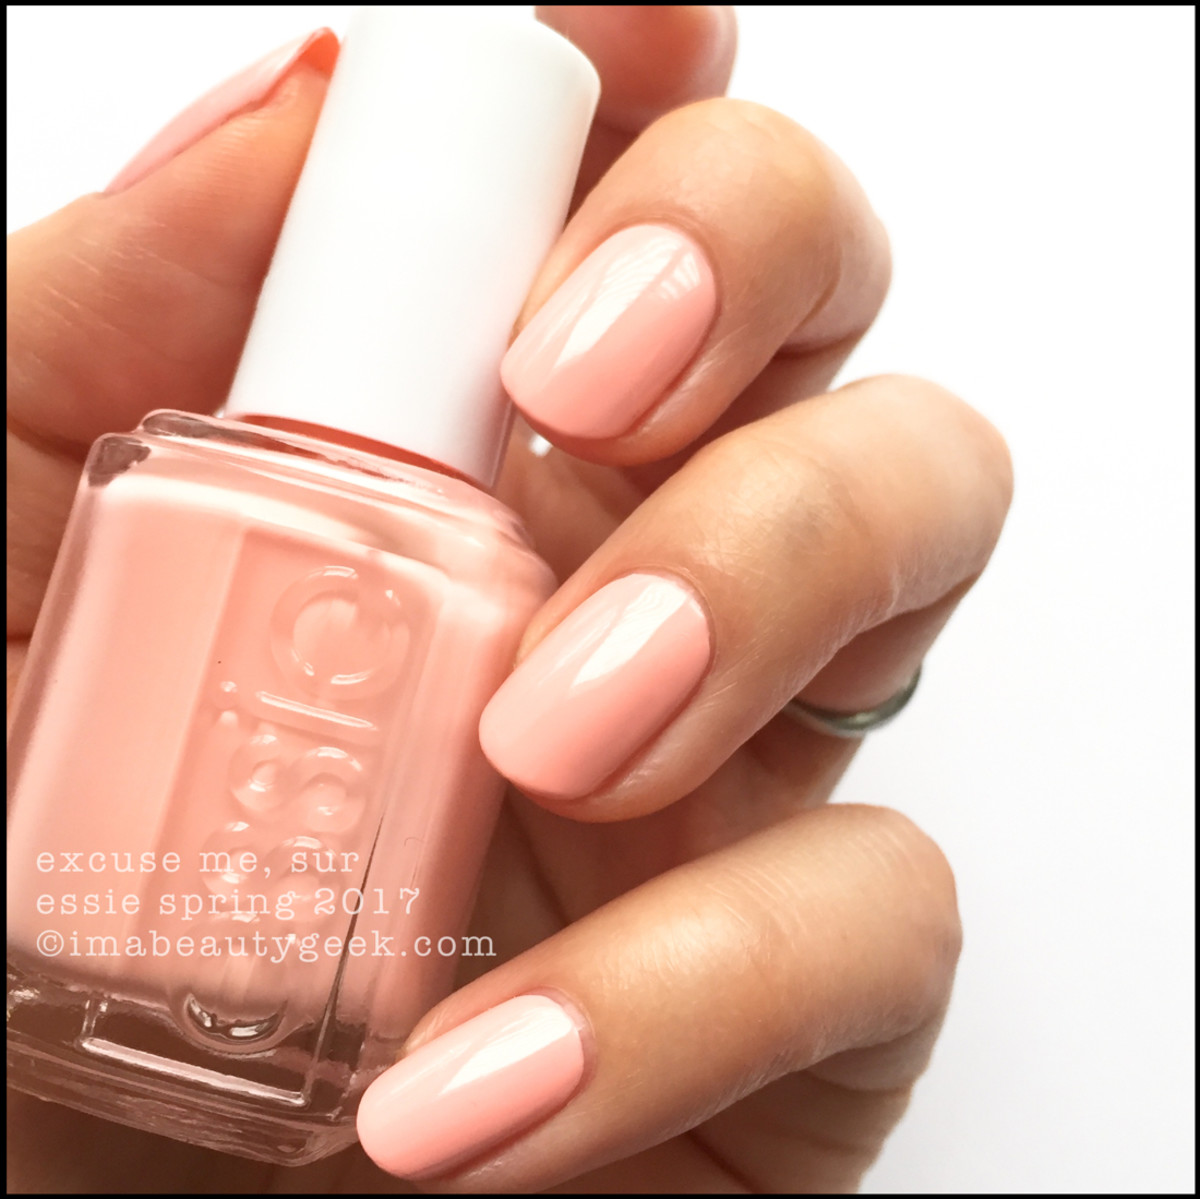 Essie Excuse Me Sur Spring 2017 Collection